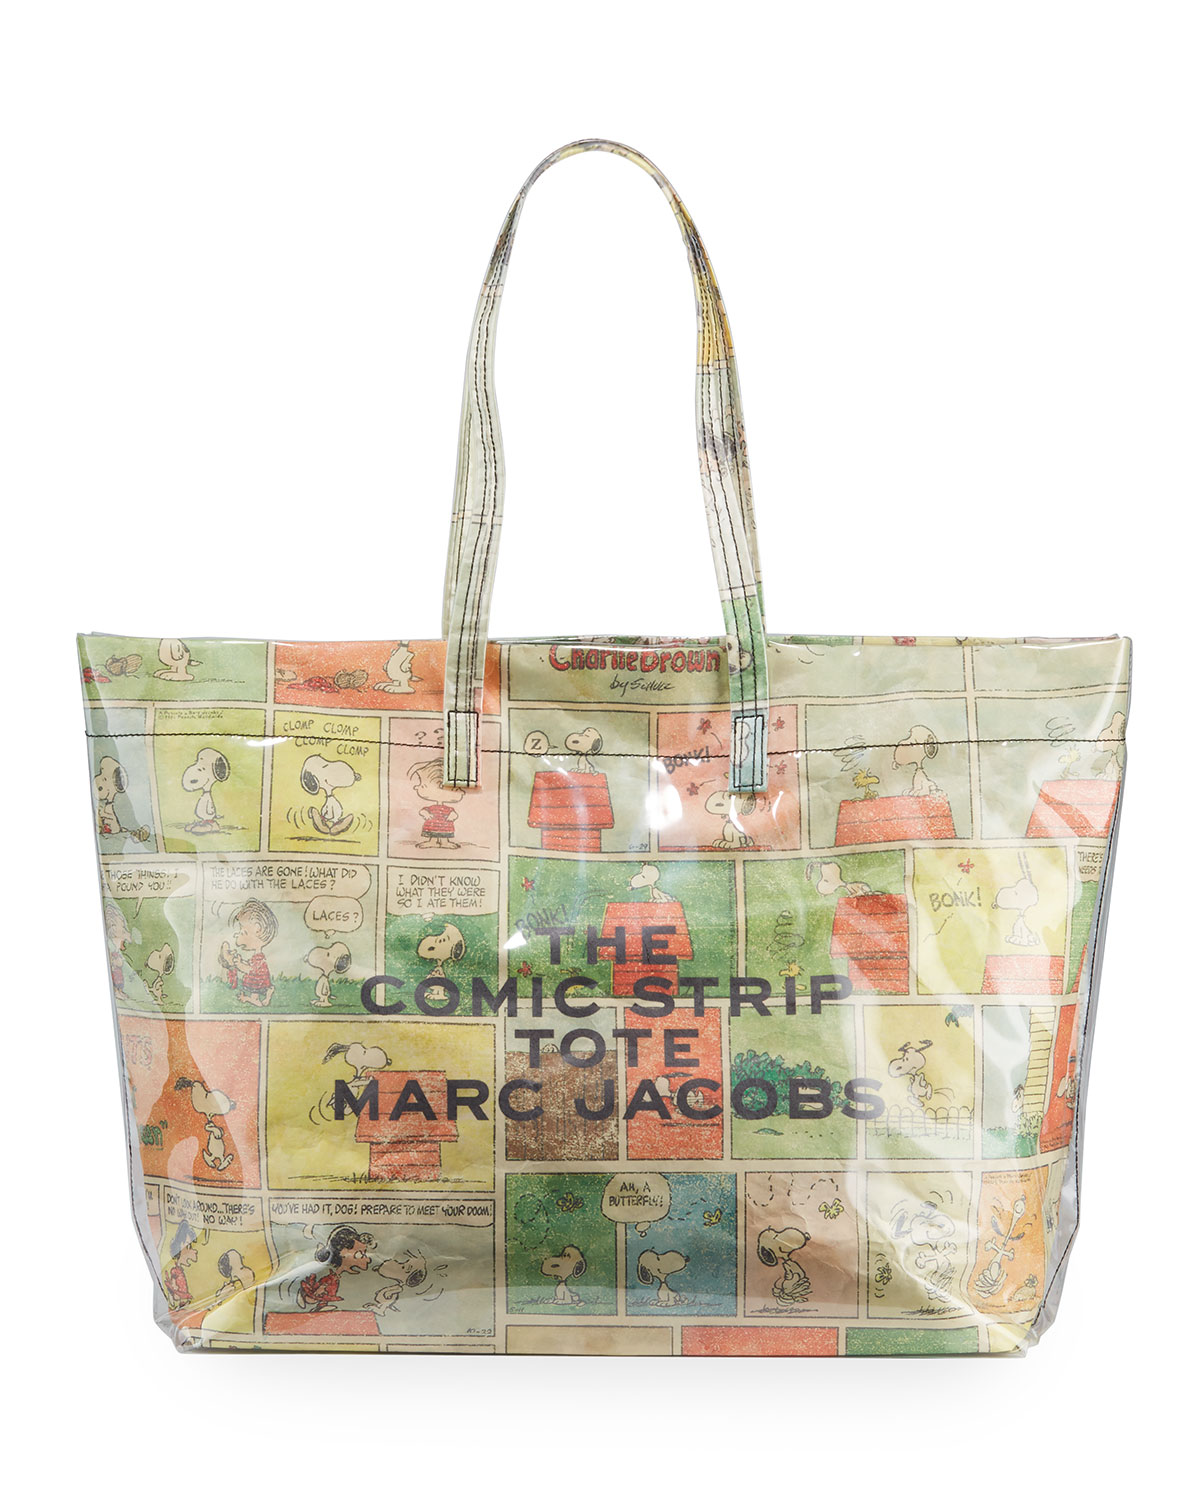 Marc Jacobs Totes THE COMIC STRIP PEANUTS TOTE BAG